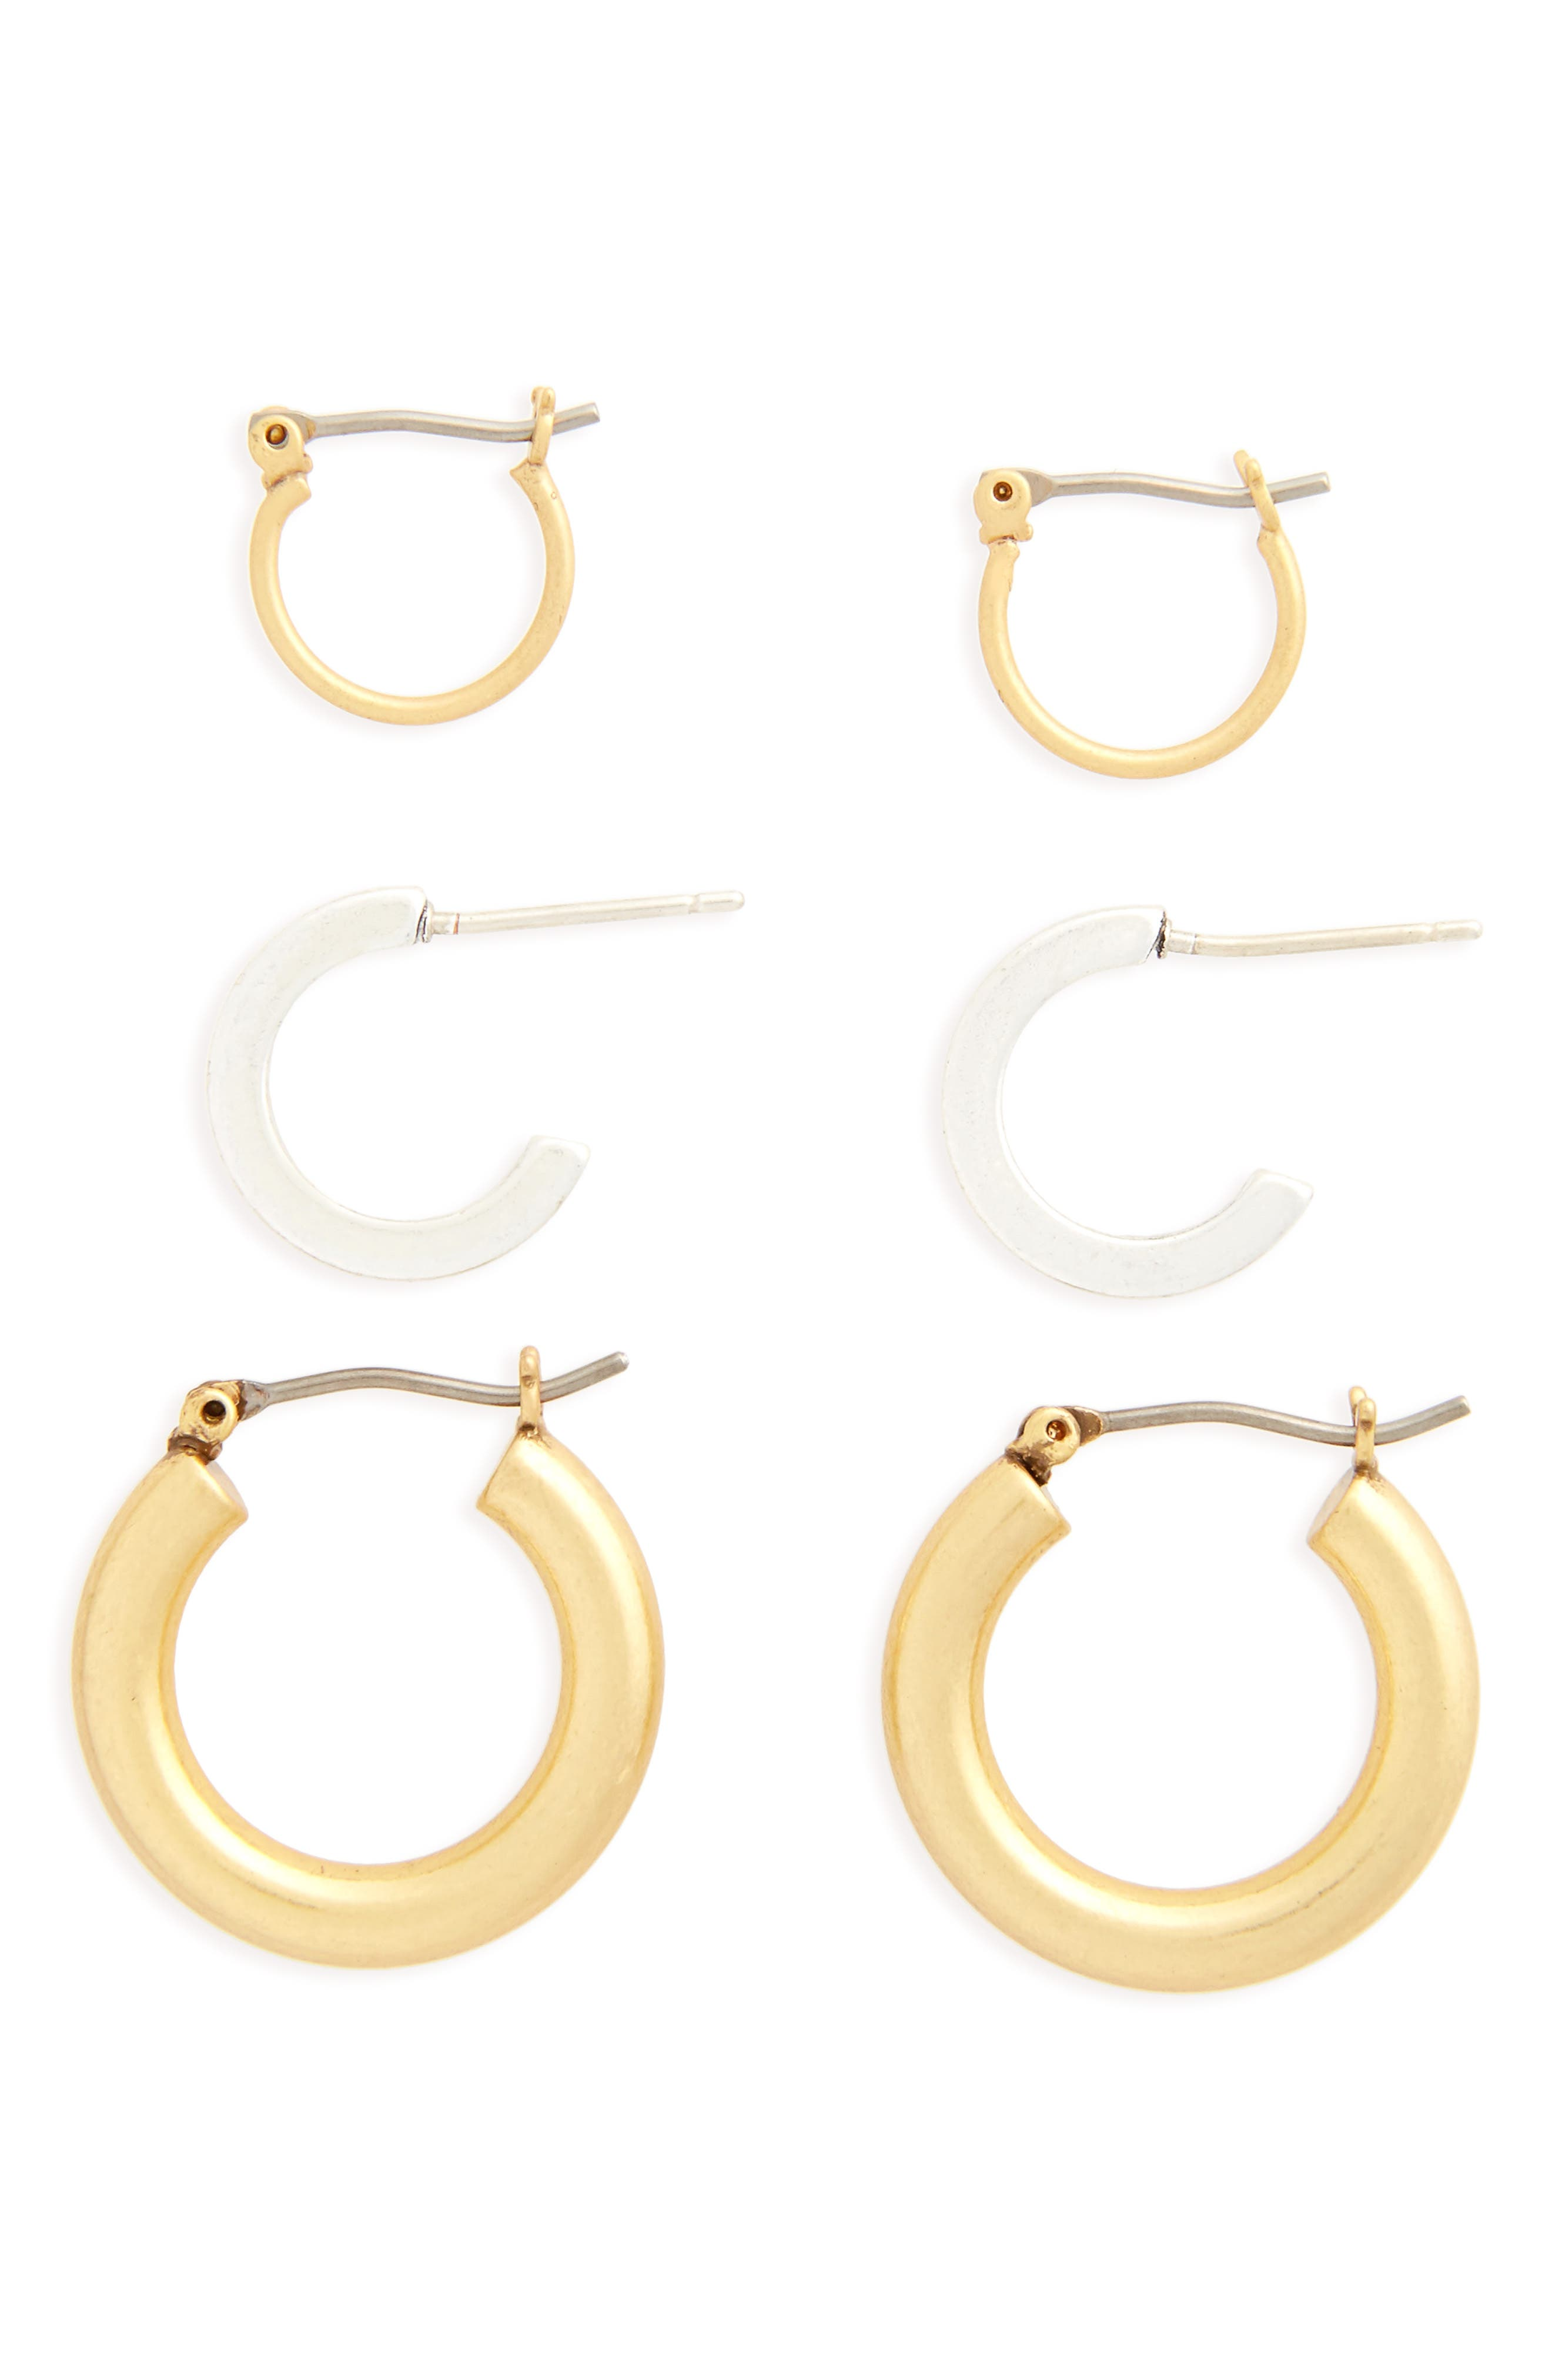 Set of 3 Mini Hoop Earrings,                         Main,                         color, 040